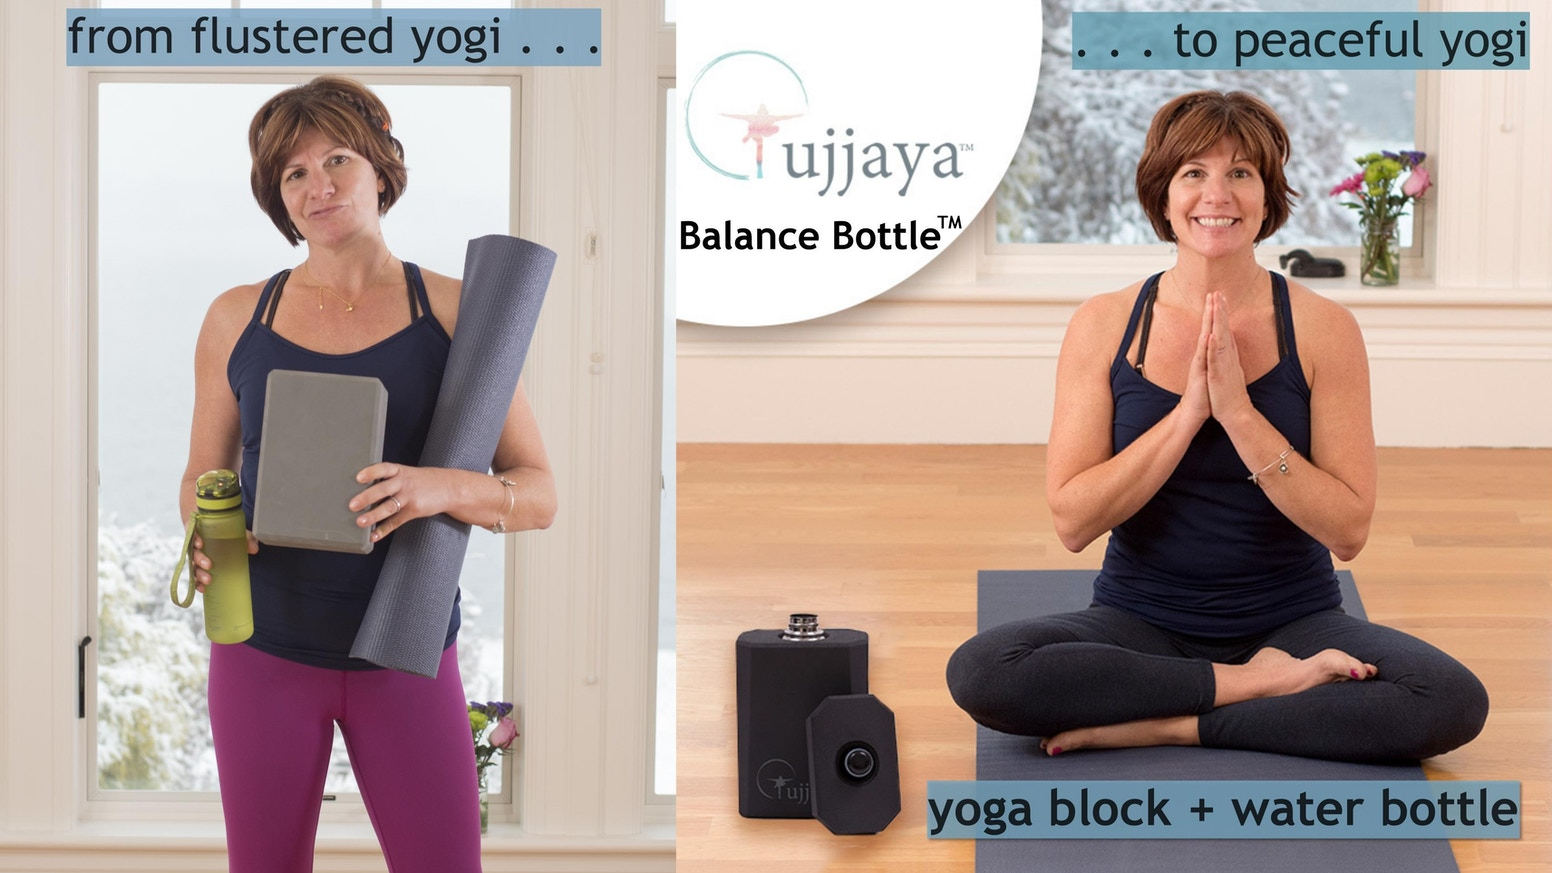 b3cce0712c9 Simplify & support your yoga practice with this combination yoga block and  water bottle.